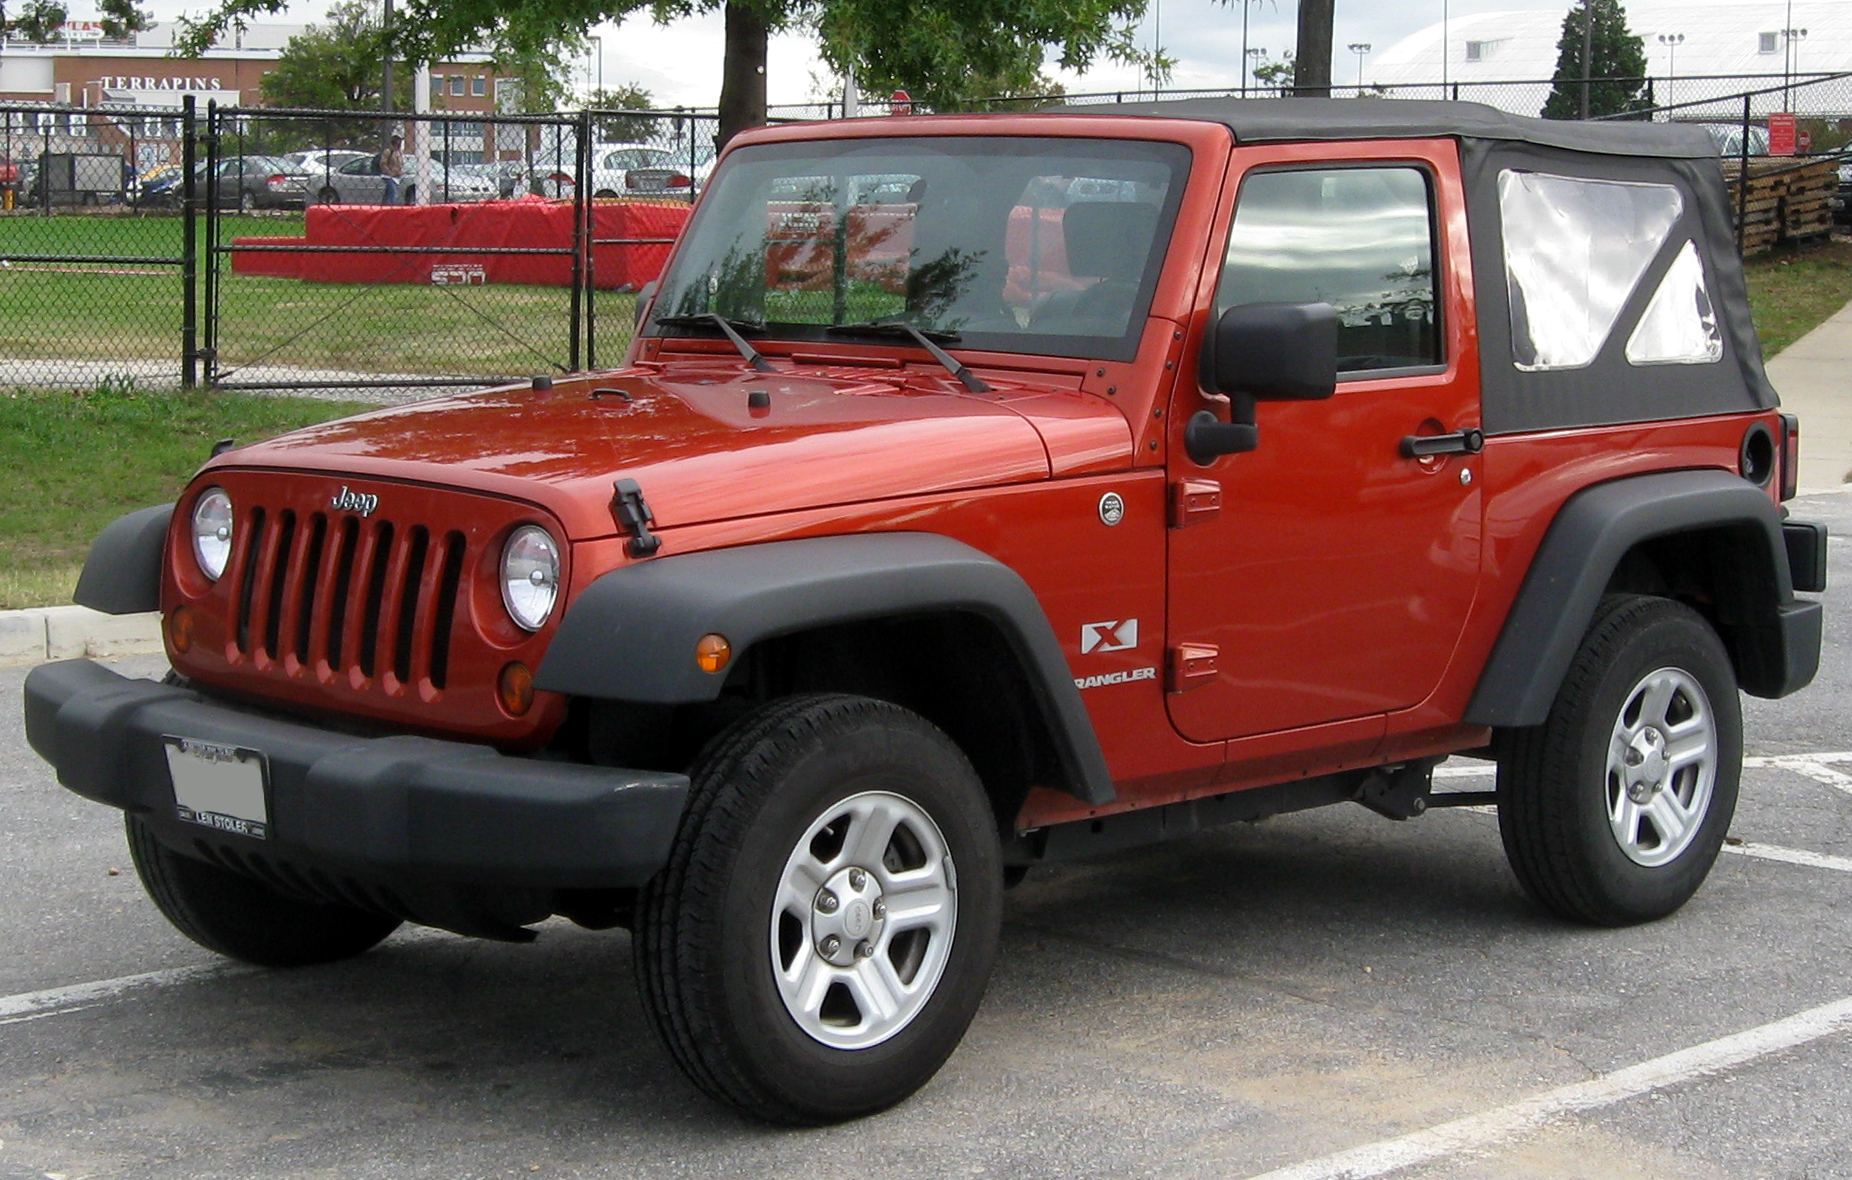 Red Jeep Wrangler in parking lot